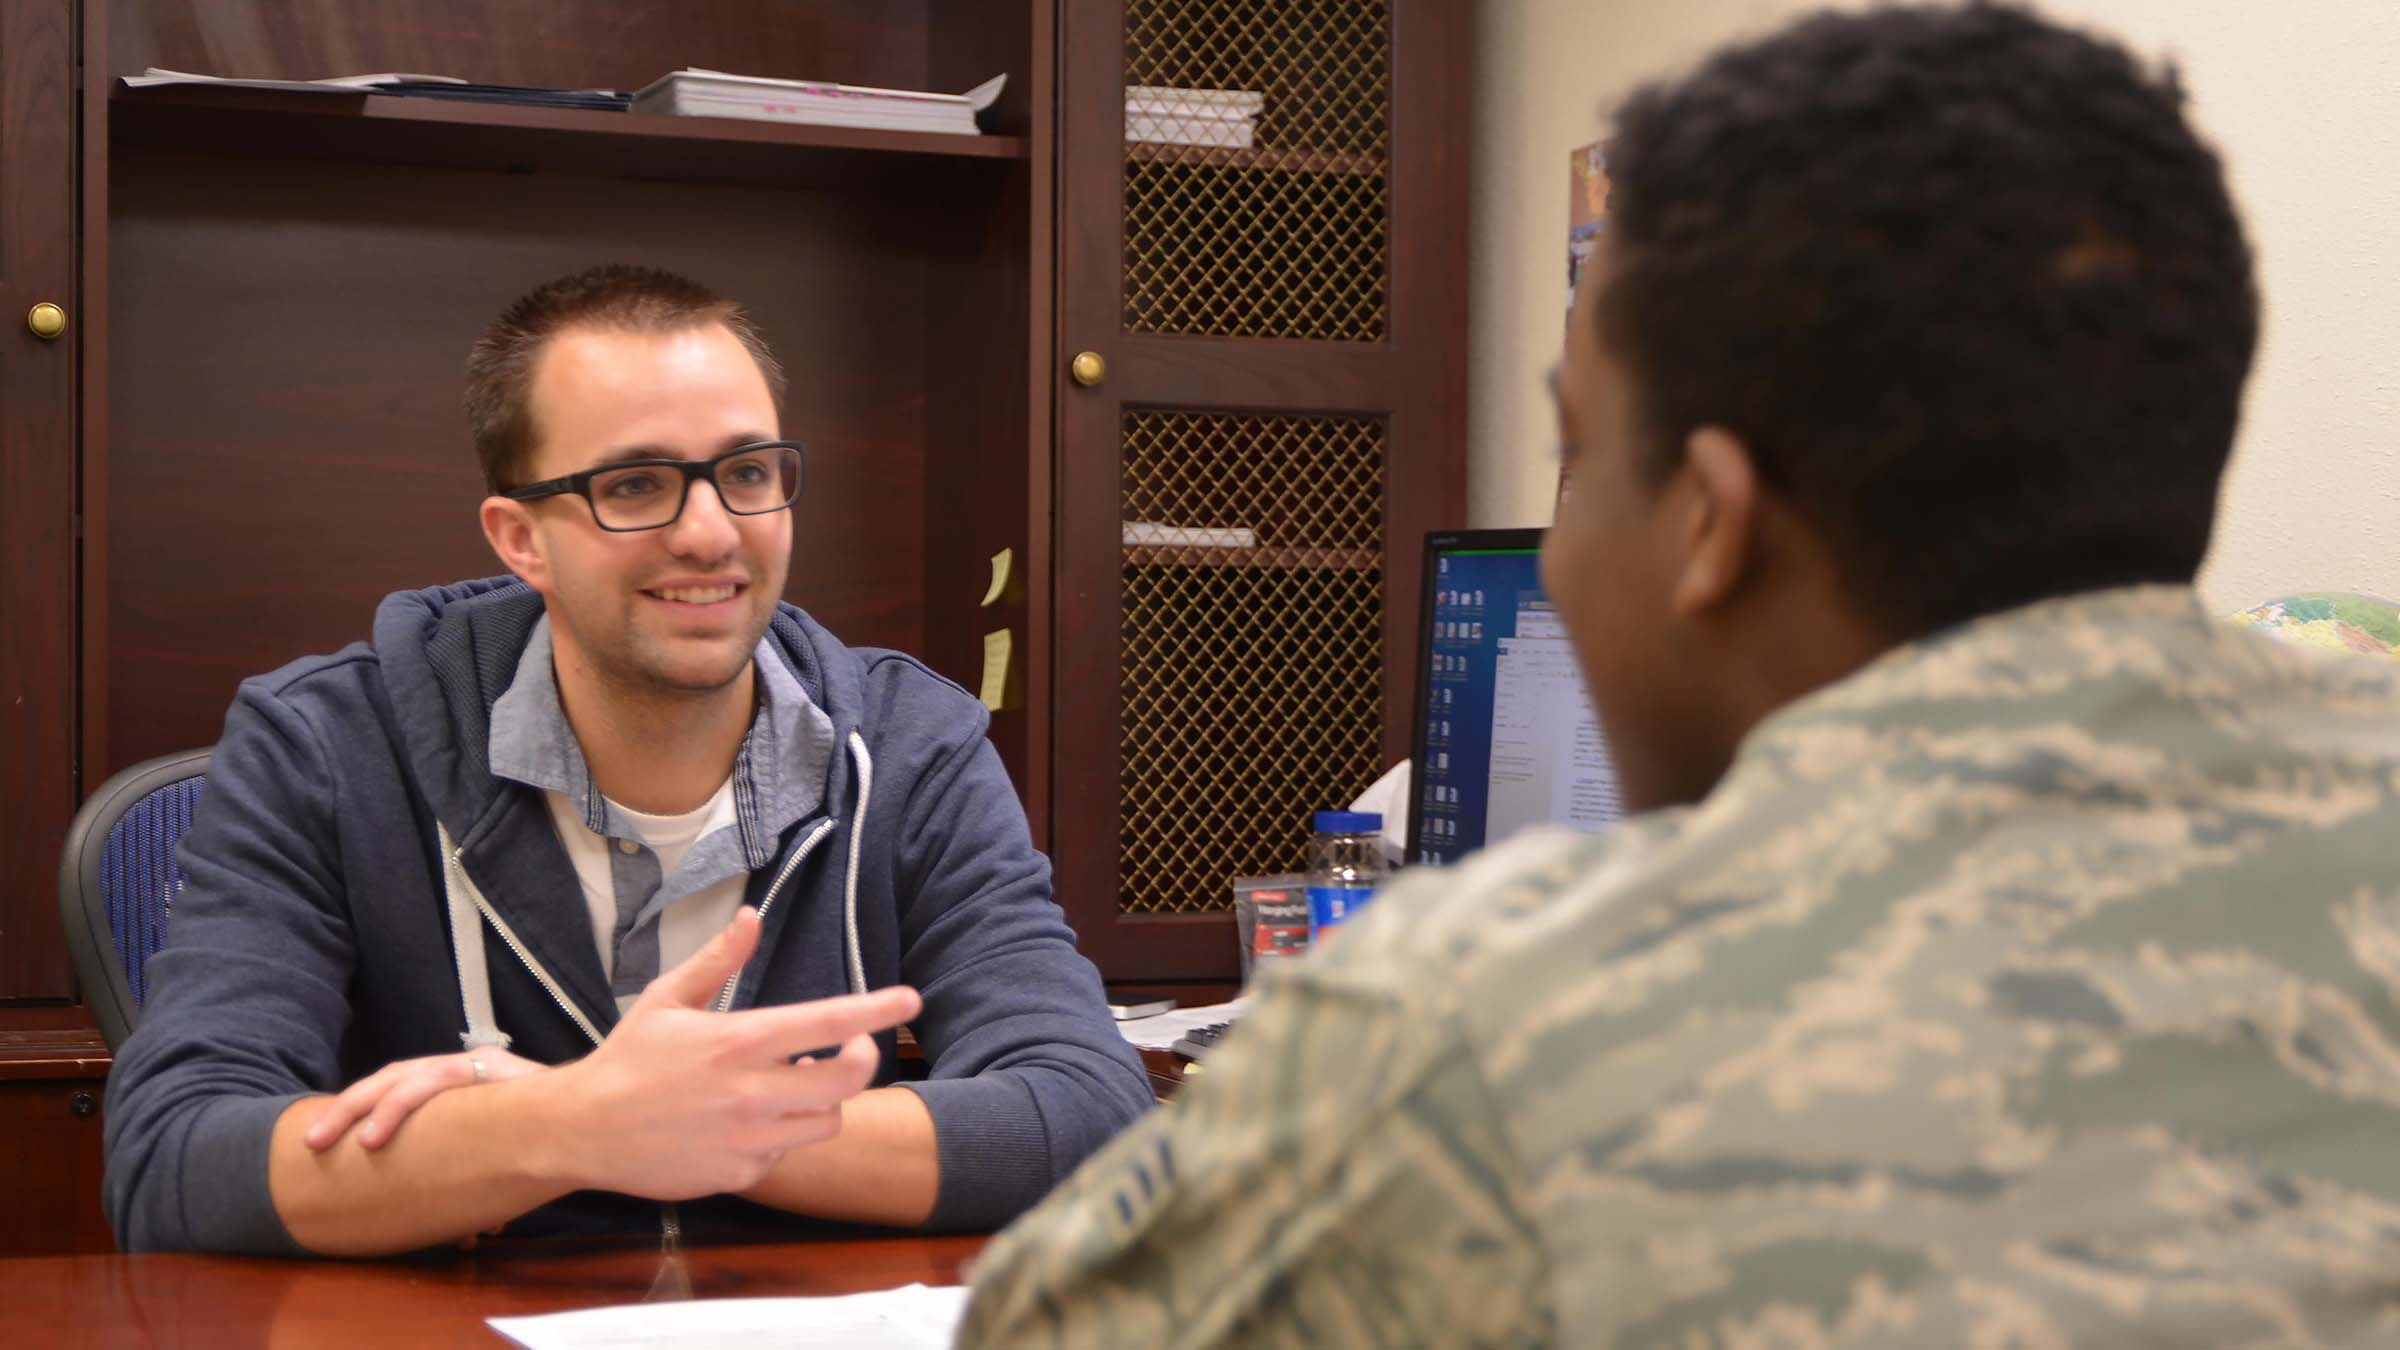 Volunteer helps service member with taxes